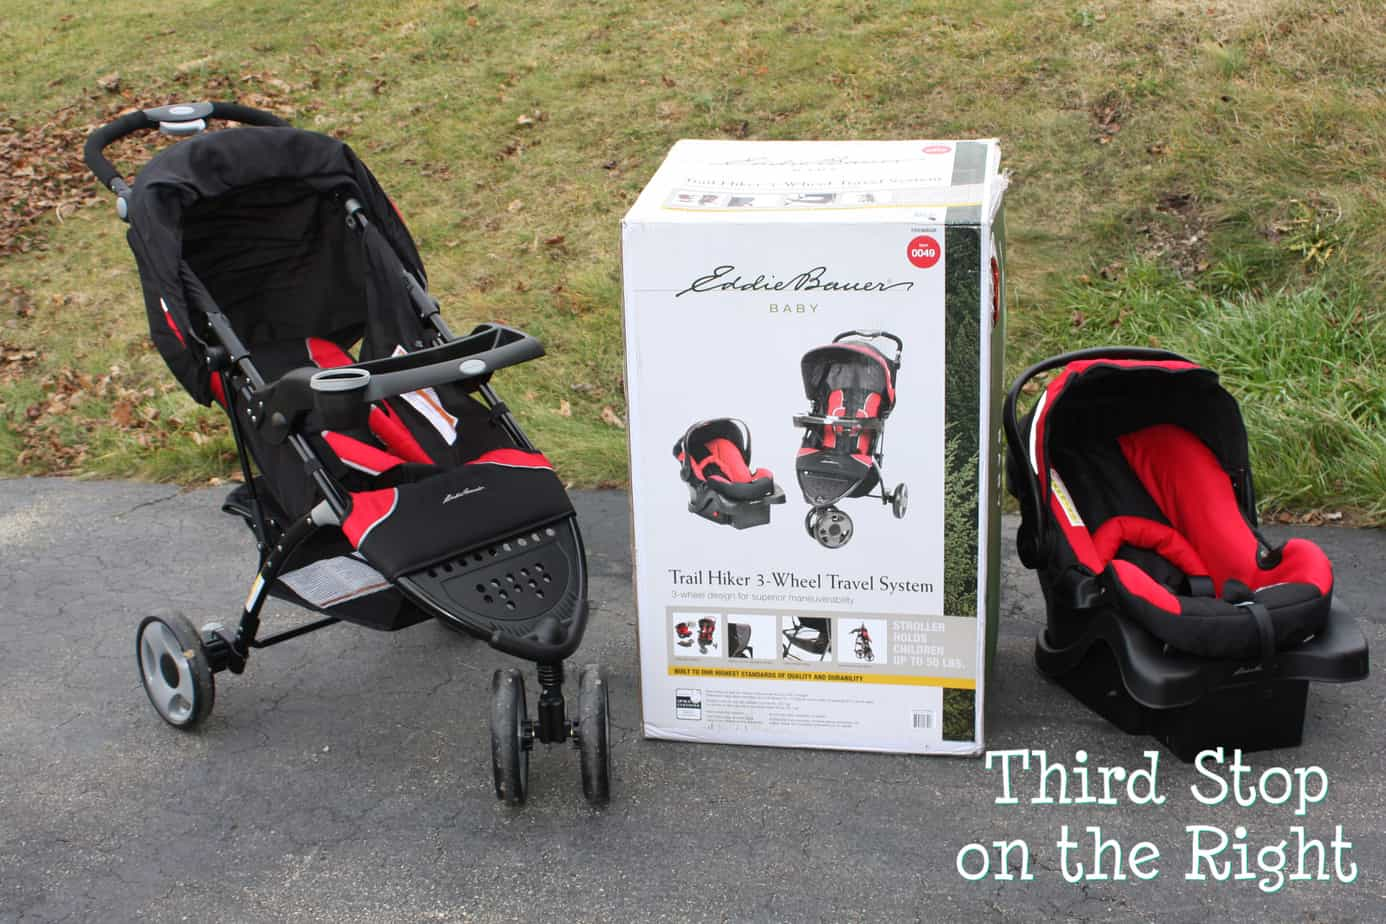 Ed Bauer Trail Hiker 3 Wheel Travel System Review Third Stop on the Right